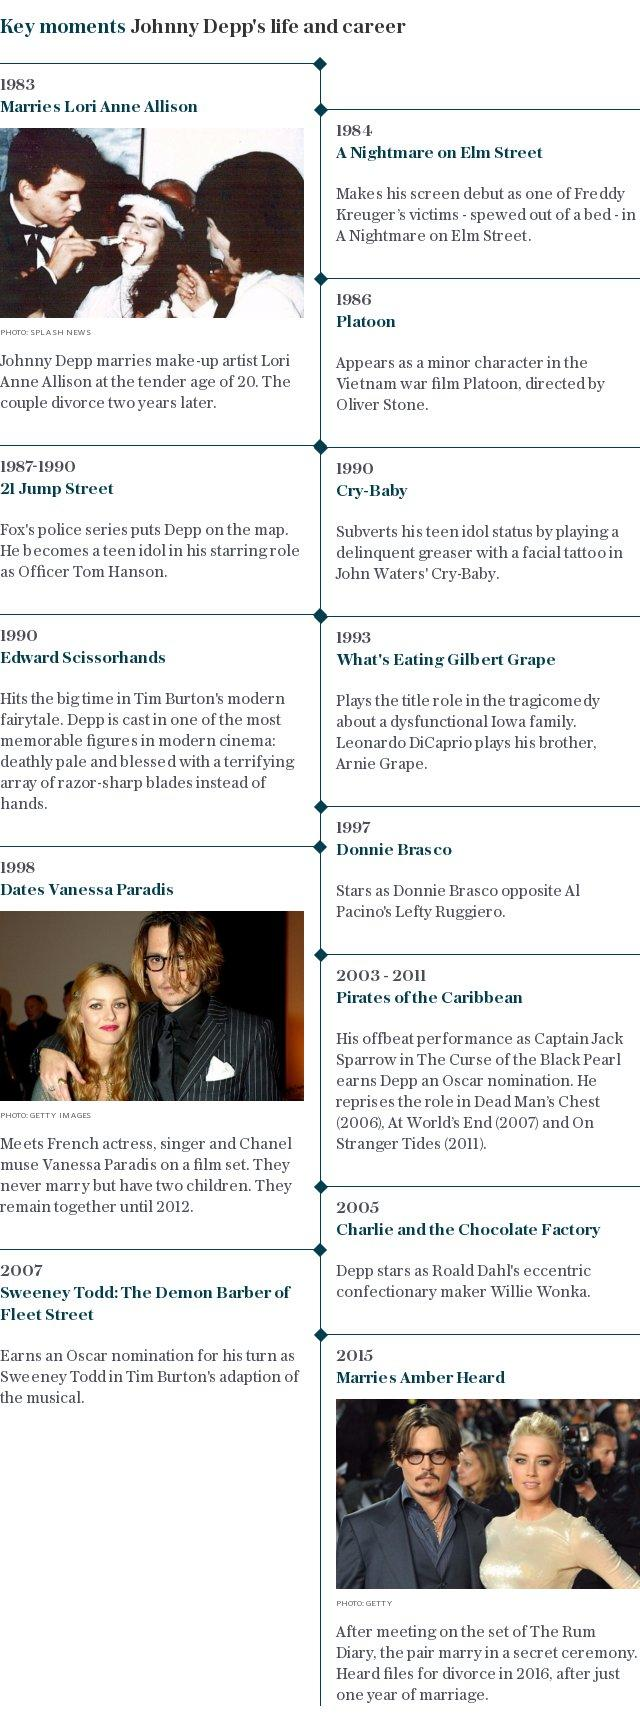 Johnny Depp - life and career timeline